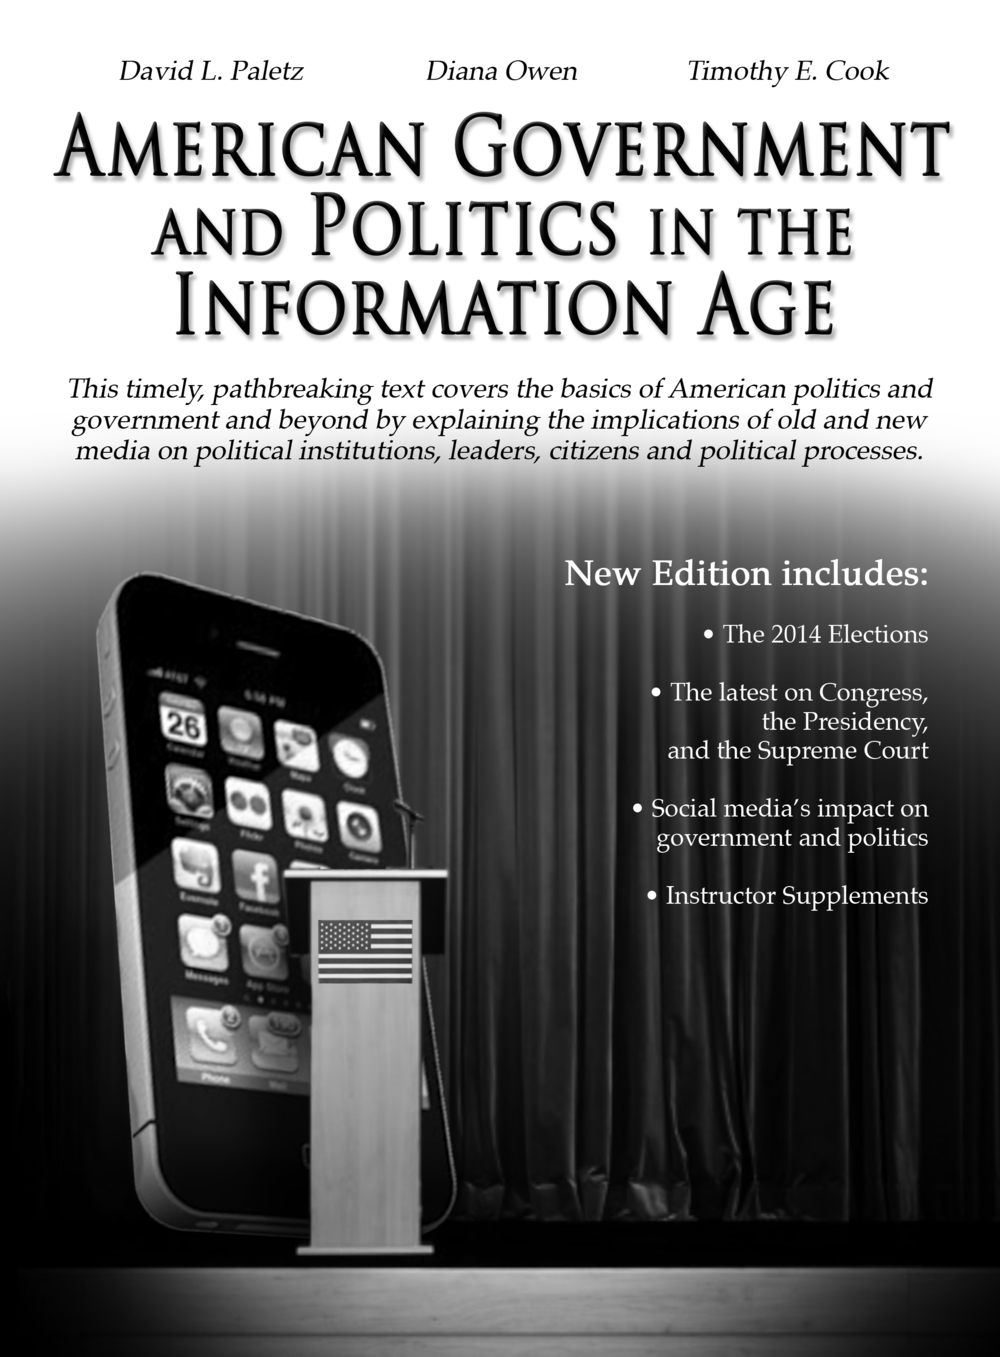 A book advertisement for the back cover of the conference booklet at the 2015 American Political Science Association (APSA) Teaching and Learning conference in Washington, DC.